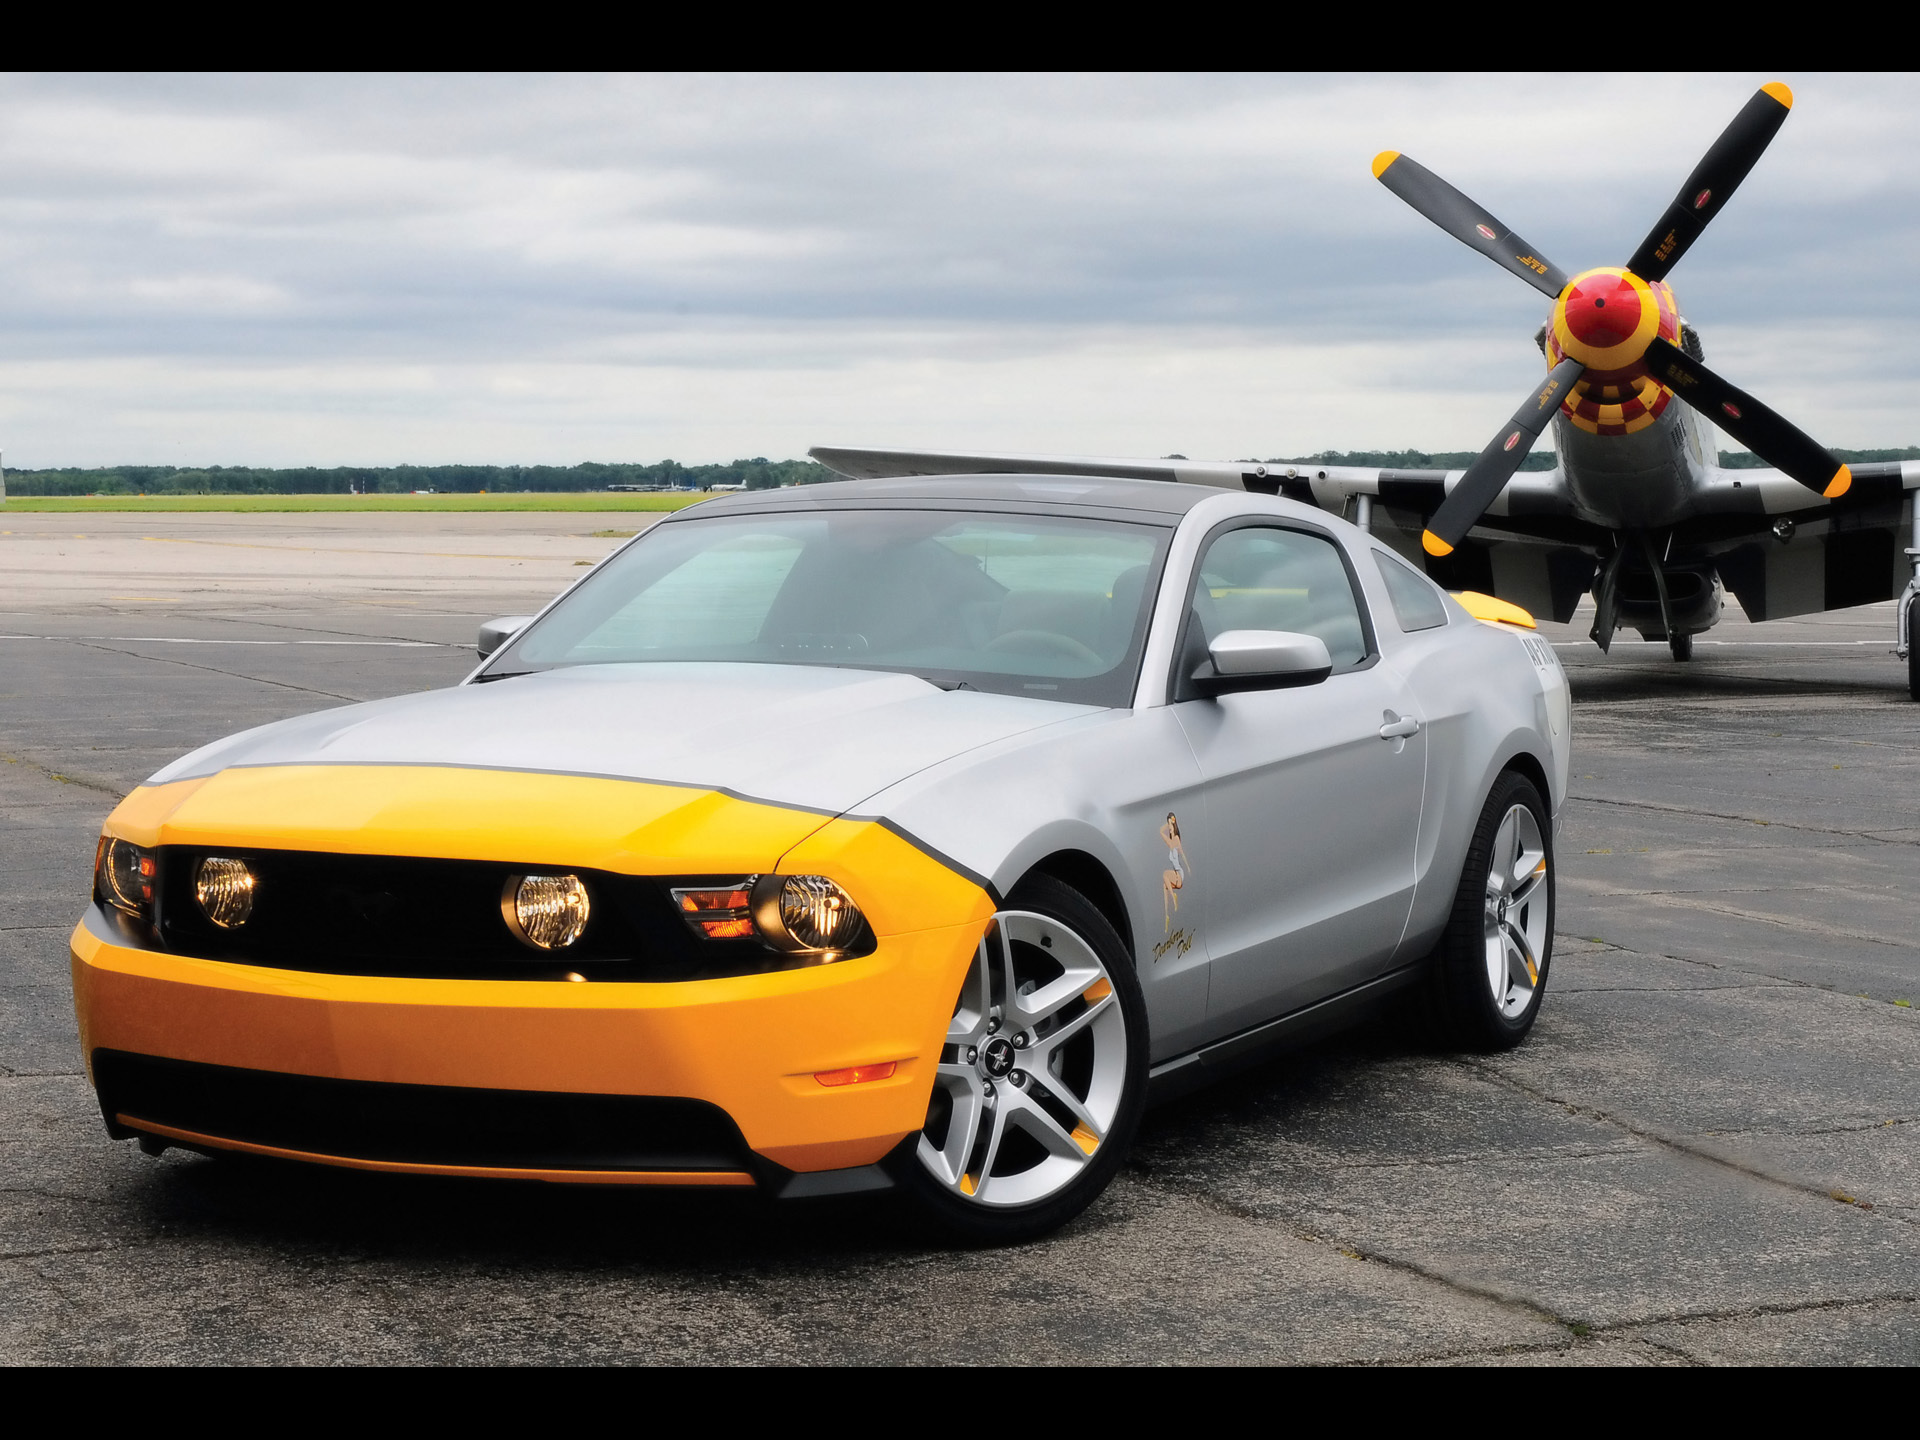 Aircraft cars Ford mustang HD Wallpaper